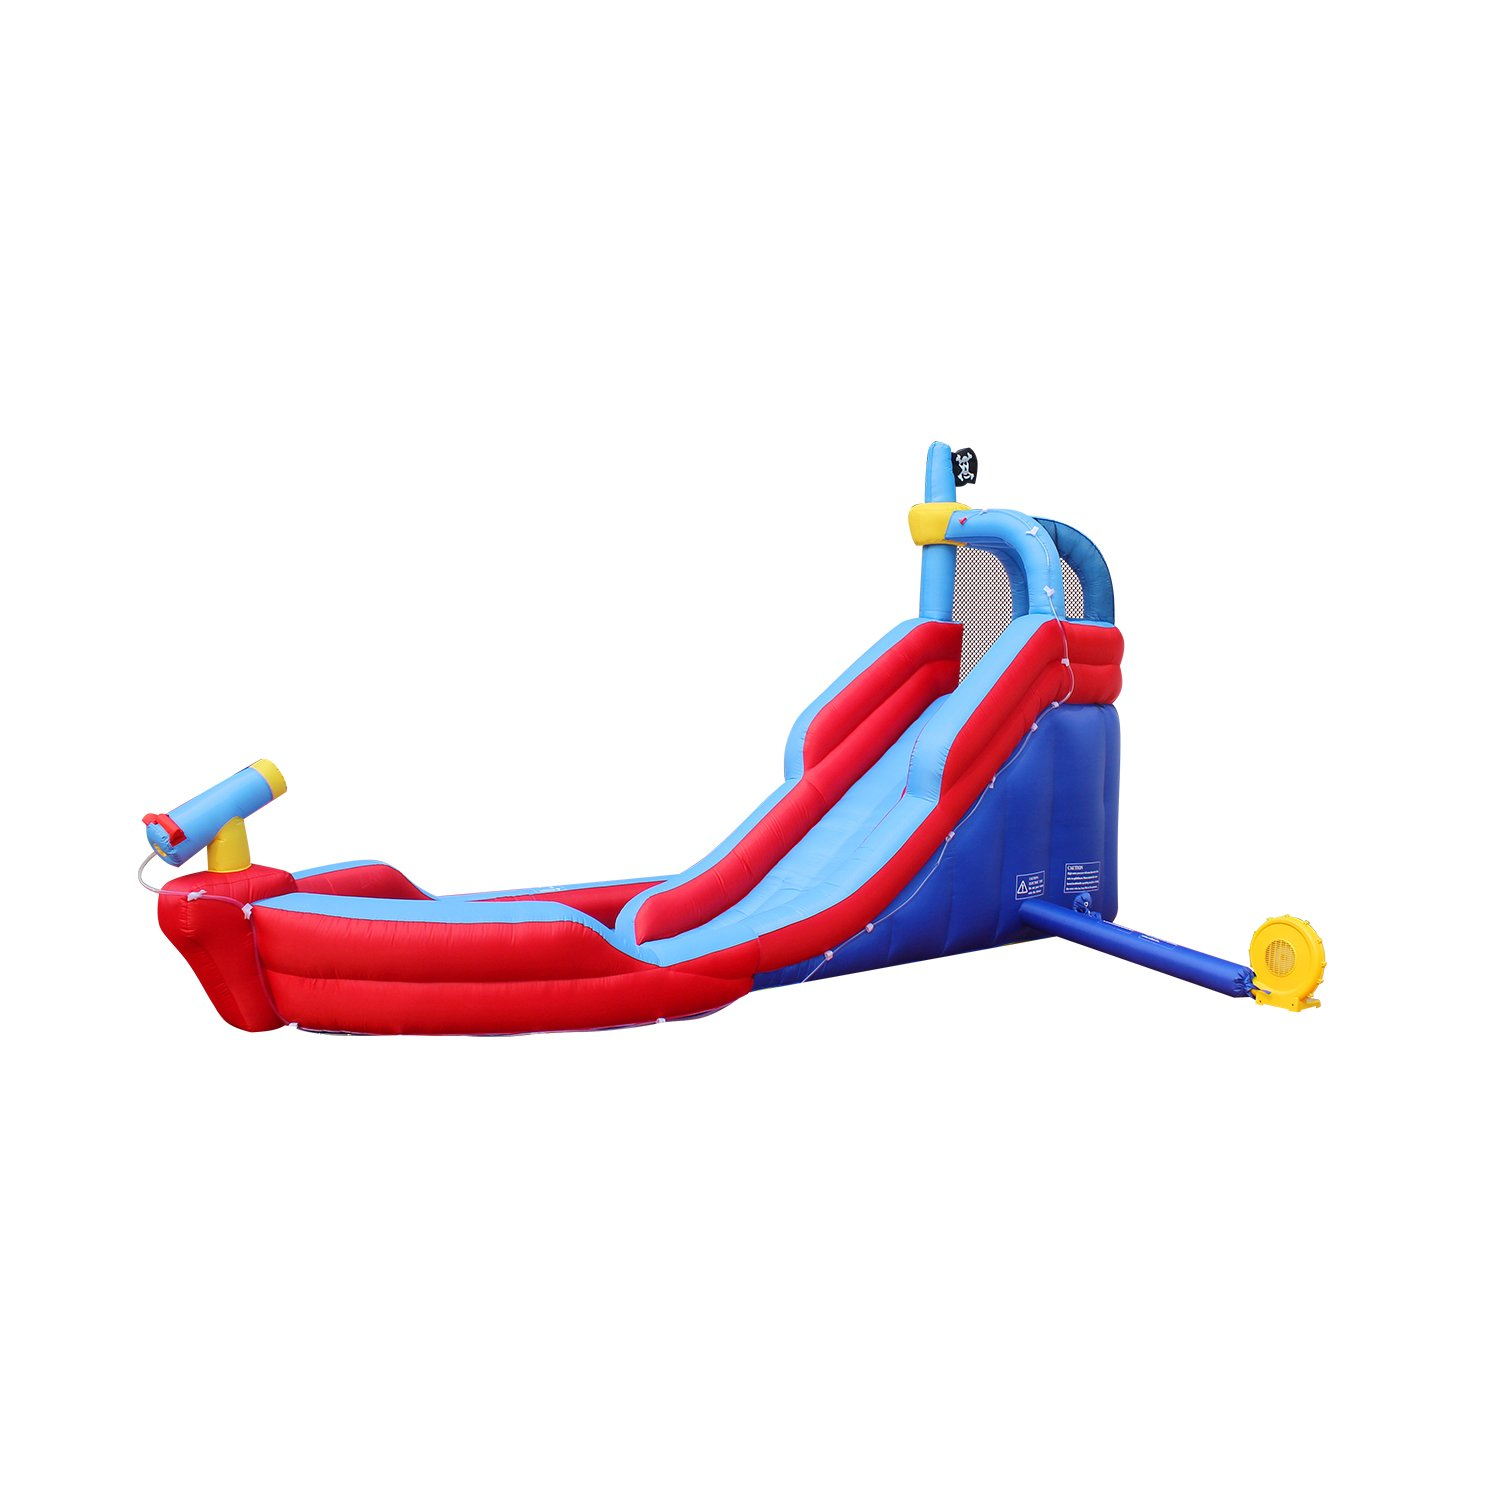 RETRO JUMP Inflatable Pirate Boat Bouncy Water Slide with Blower Climbing Wall Water Park for Kids by RETRO JUMP (Image #3)